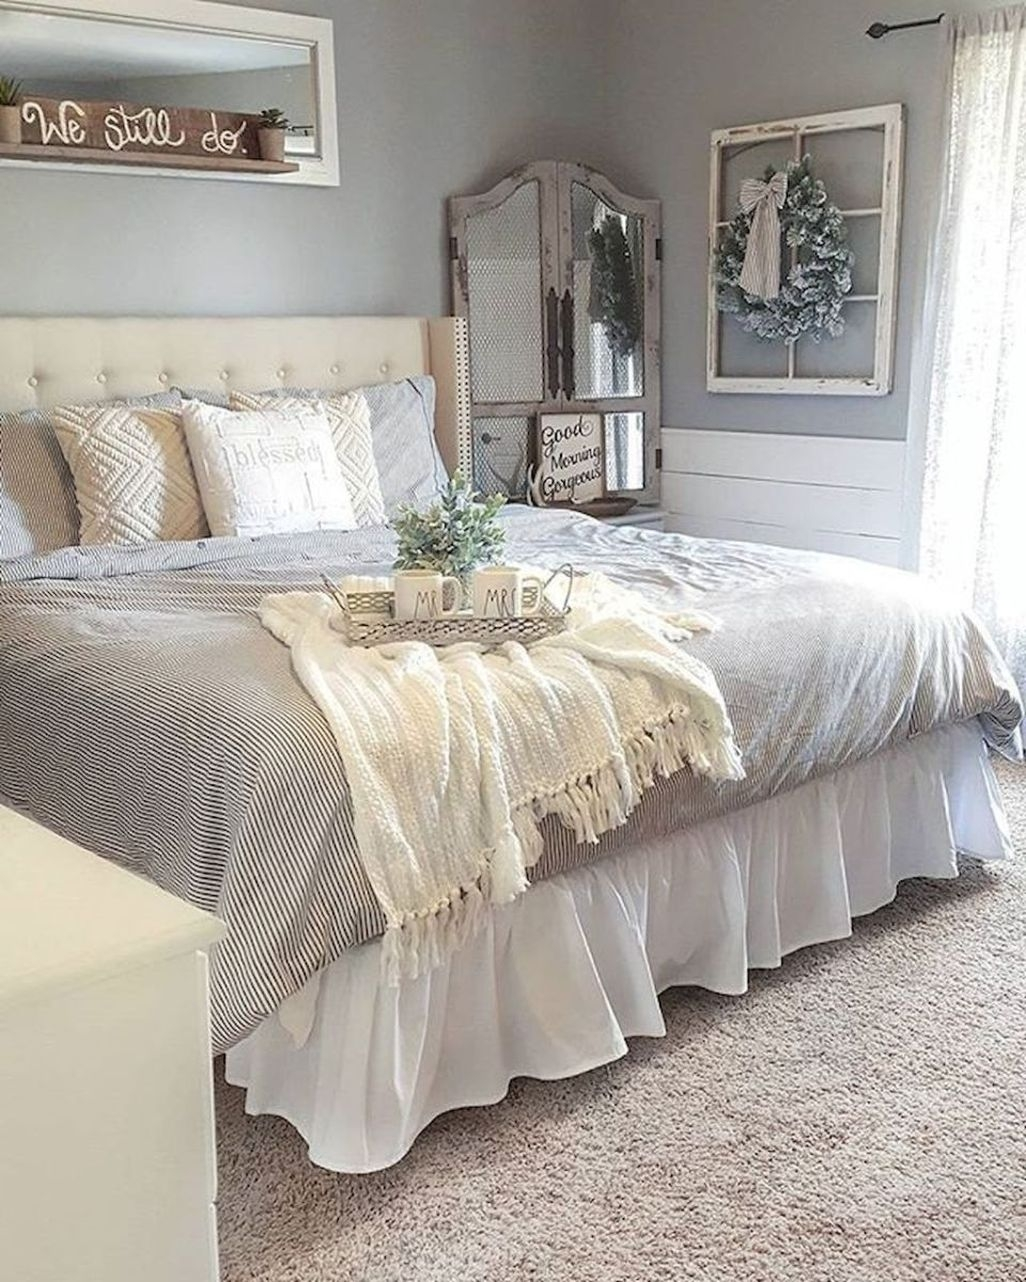 Awesome Rustic Farmhouse Bedroom Decoration Ideas 27